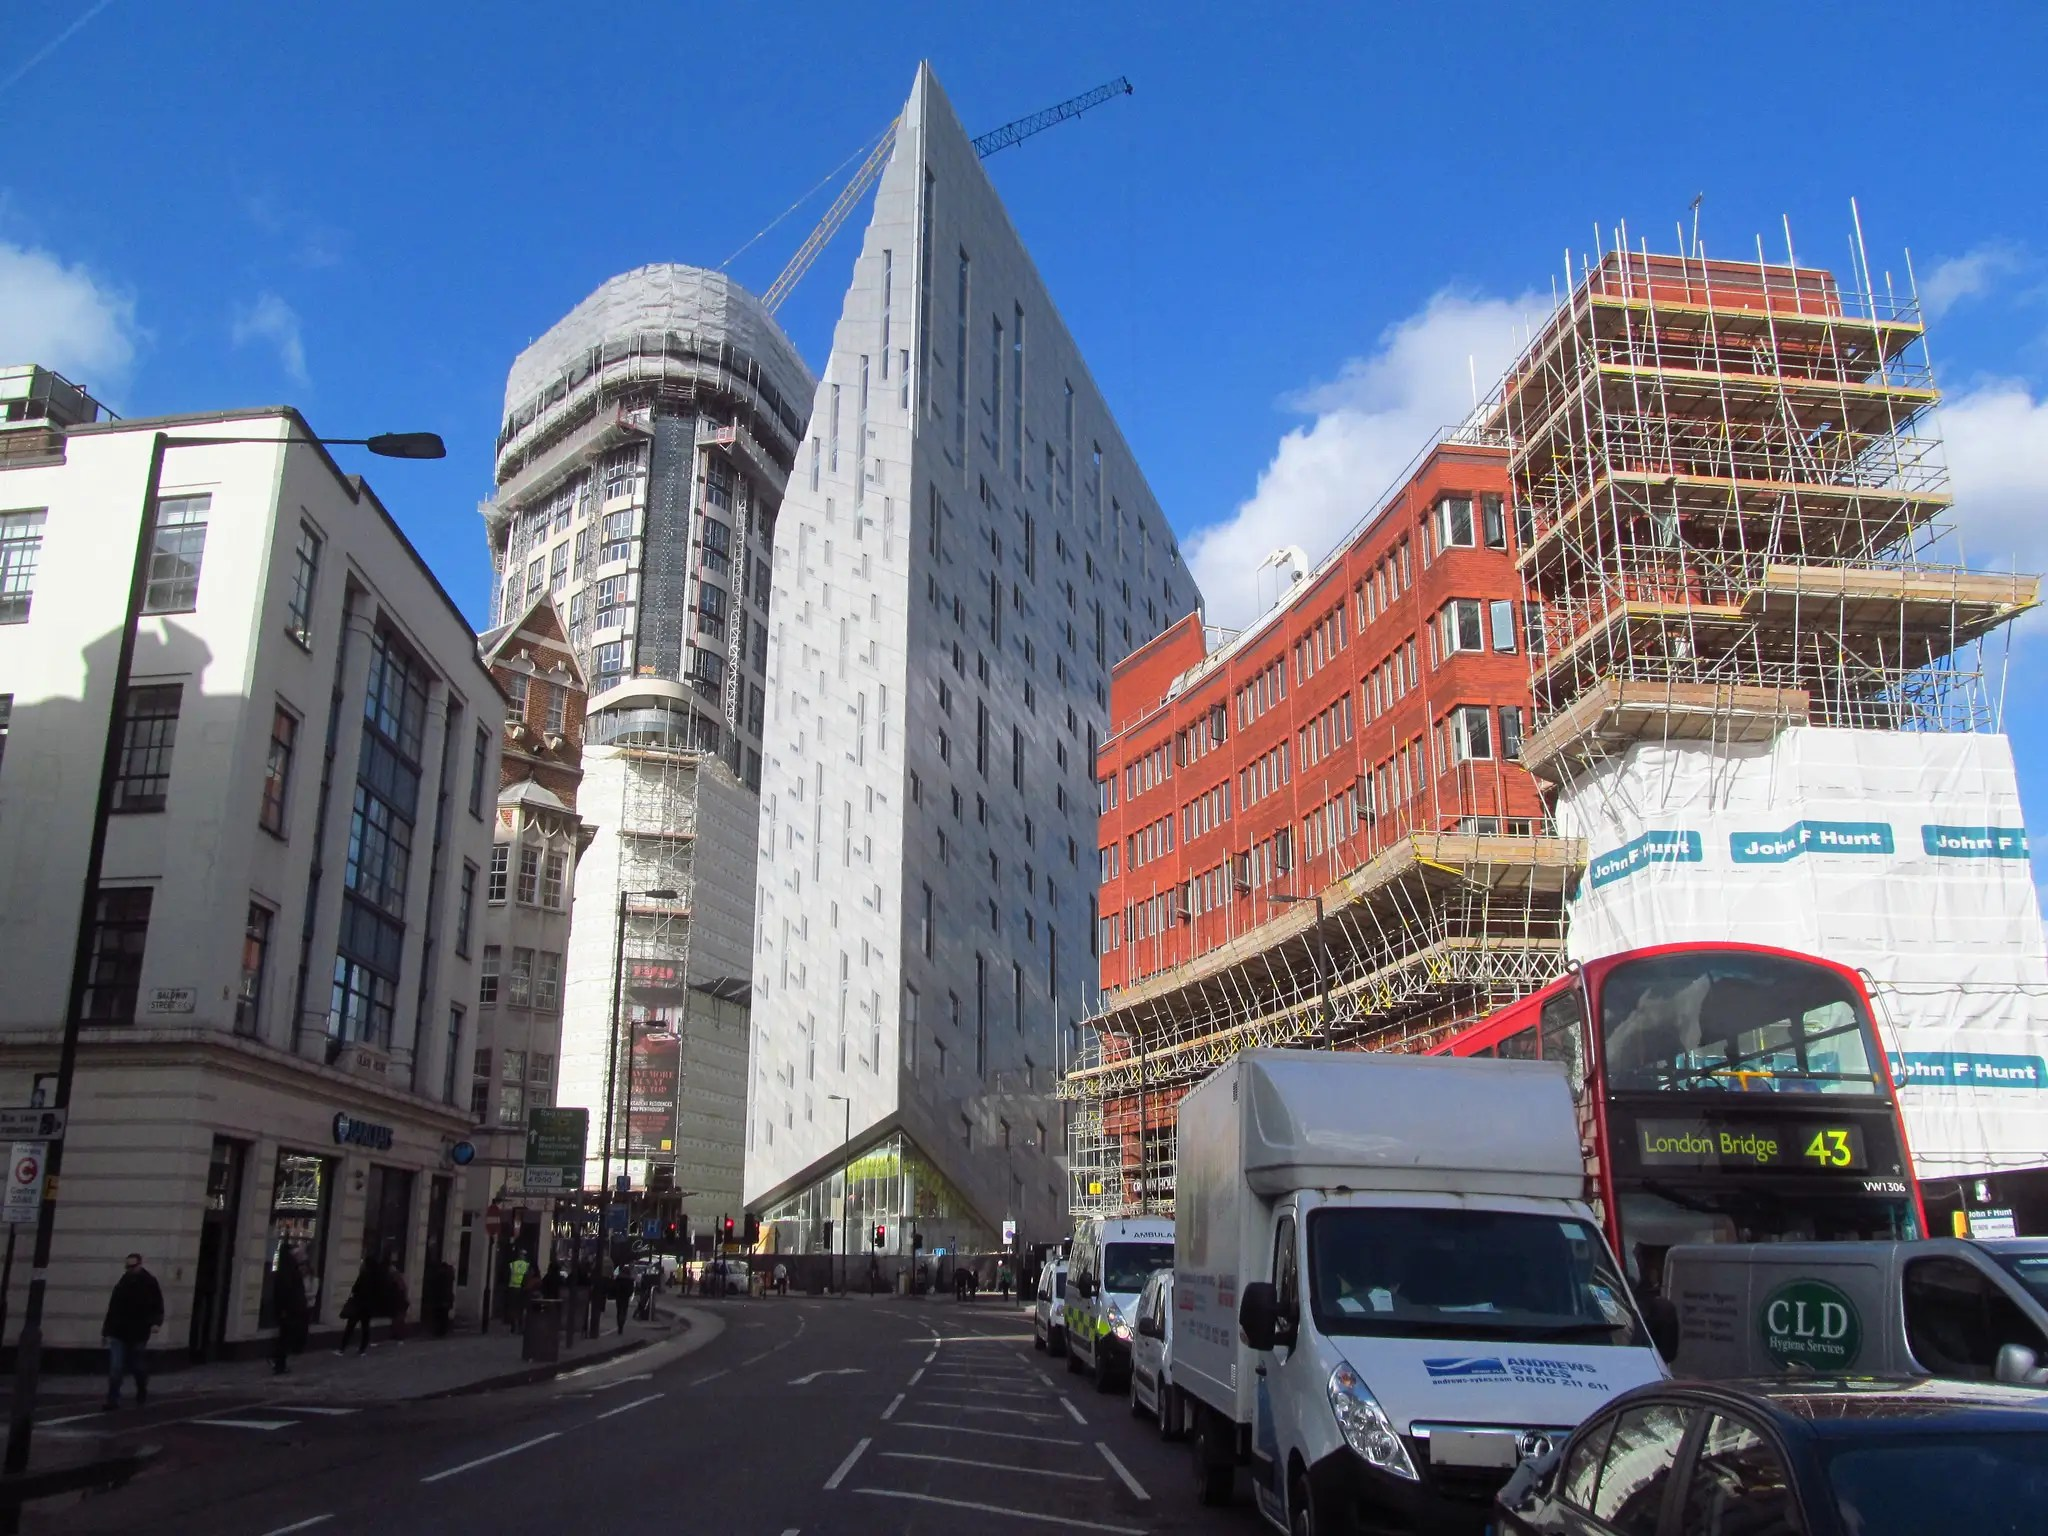 51. The M by Montcalm building in east London provides an optical illusion that leaves passers-by dazzled.